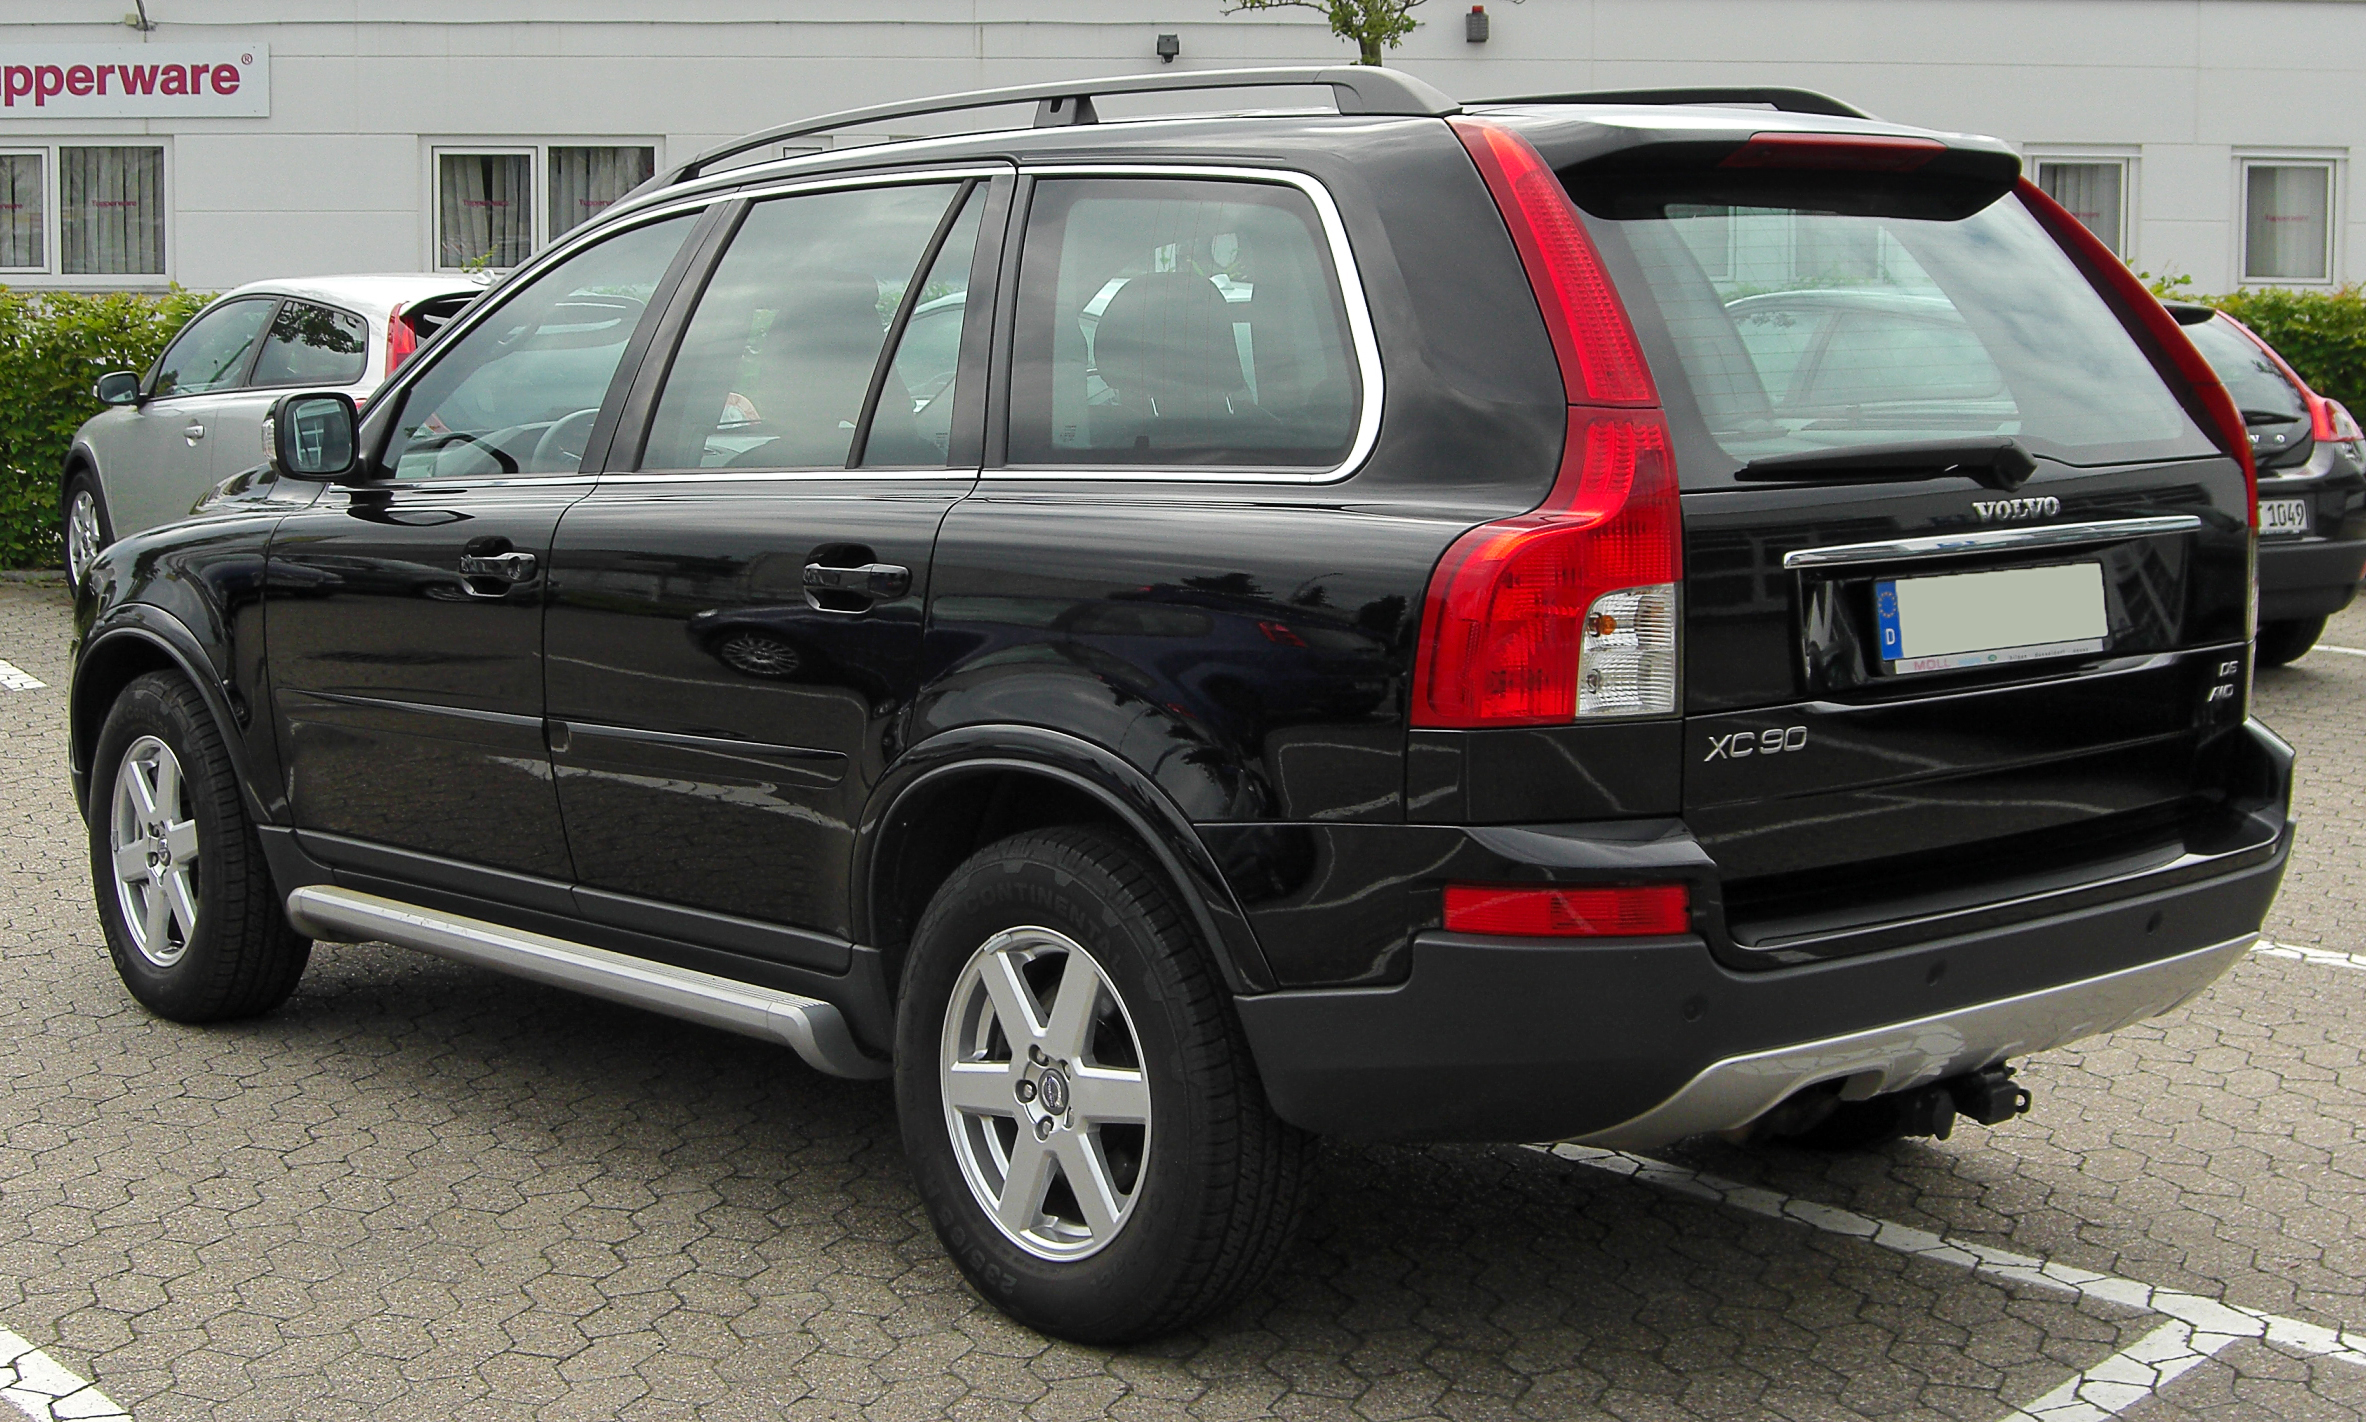 376294 Startovali V Rossii Prodazhi Polnoprivodnogo Krossovera Volvo Xc60 Awd as well Showthread further Powerful 2015 Volvo Xc90 T8 Plug In Hybrid Revealed together with 2014 Xc60 r Design further File volvo xc90 d5 awd facelift rear 20100731. on volvo xc60 r design running boards